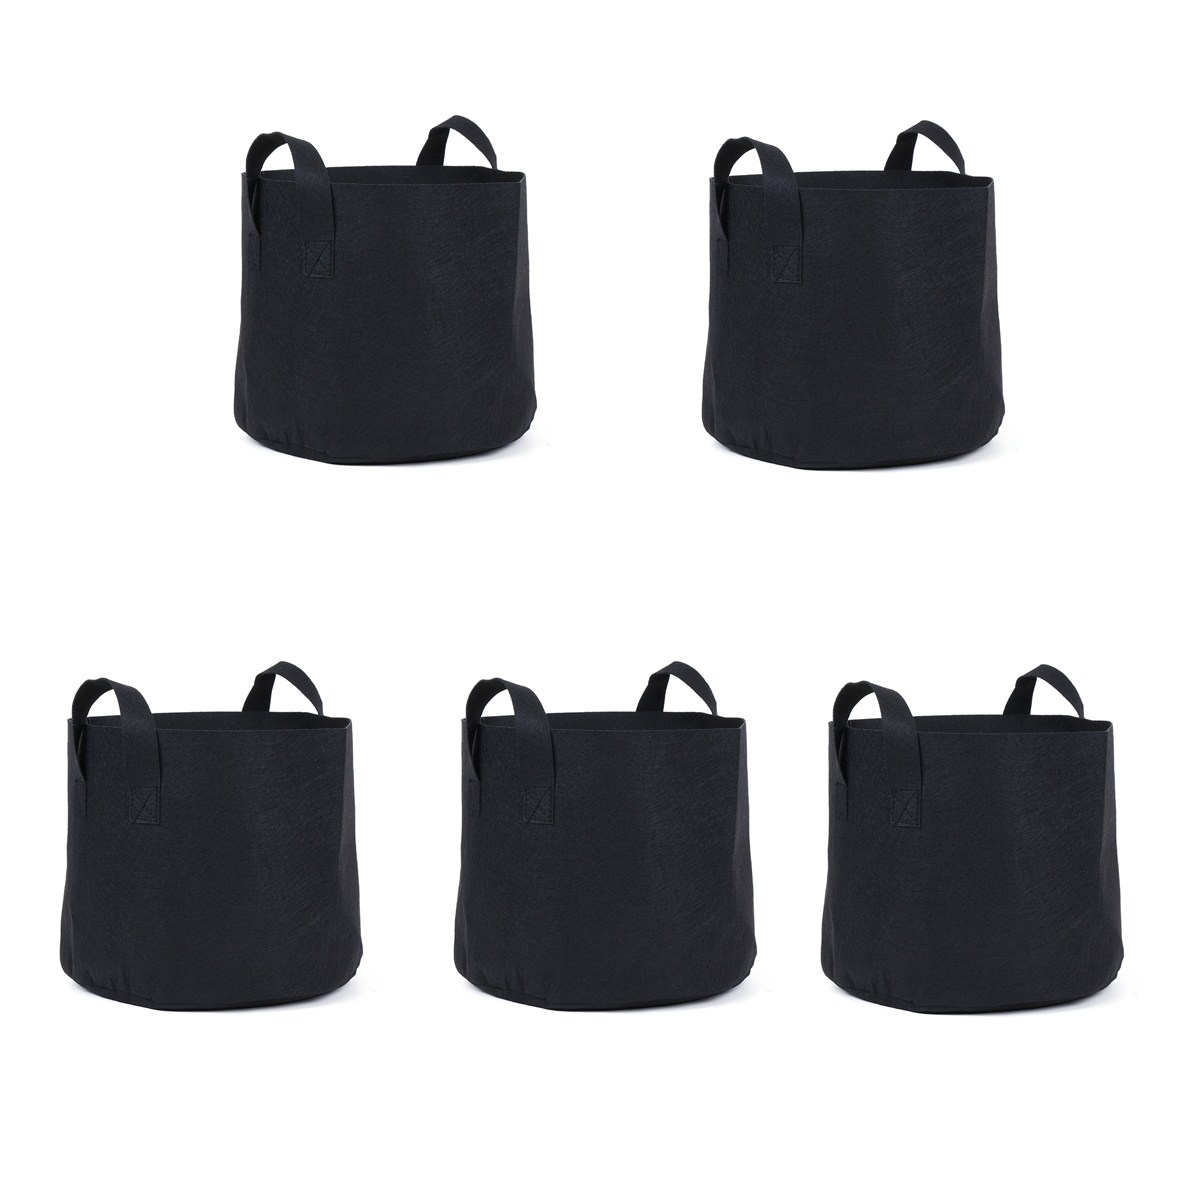 5pcs 5 Gallon Round Planter Grow Bag Plant Pouch Root Pots Container w/Handles